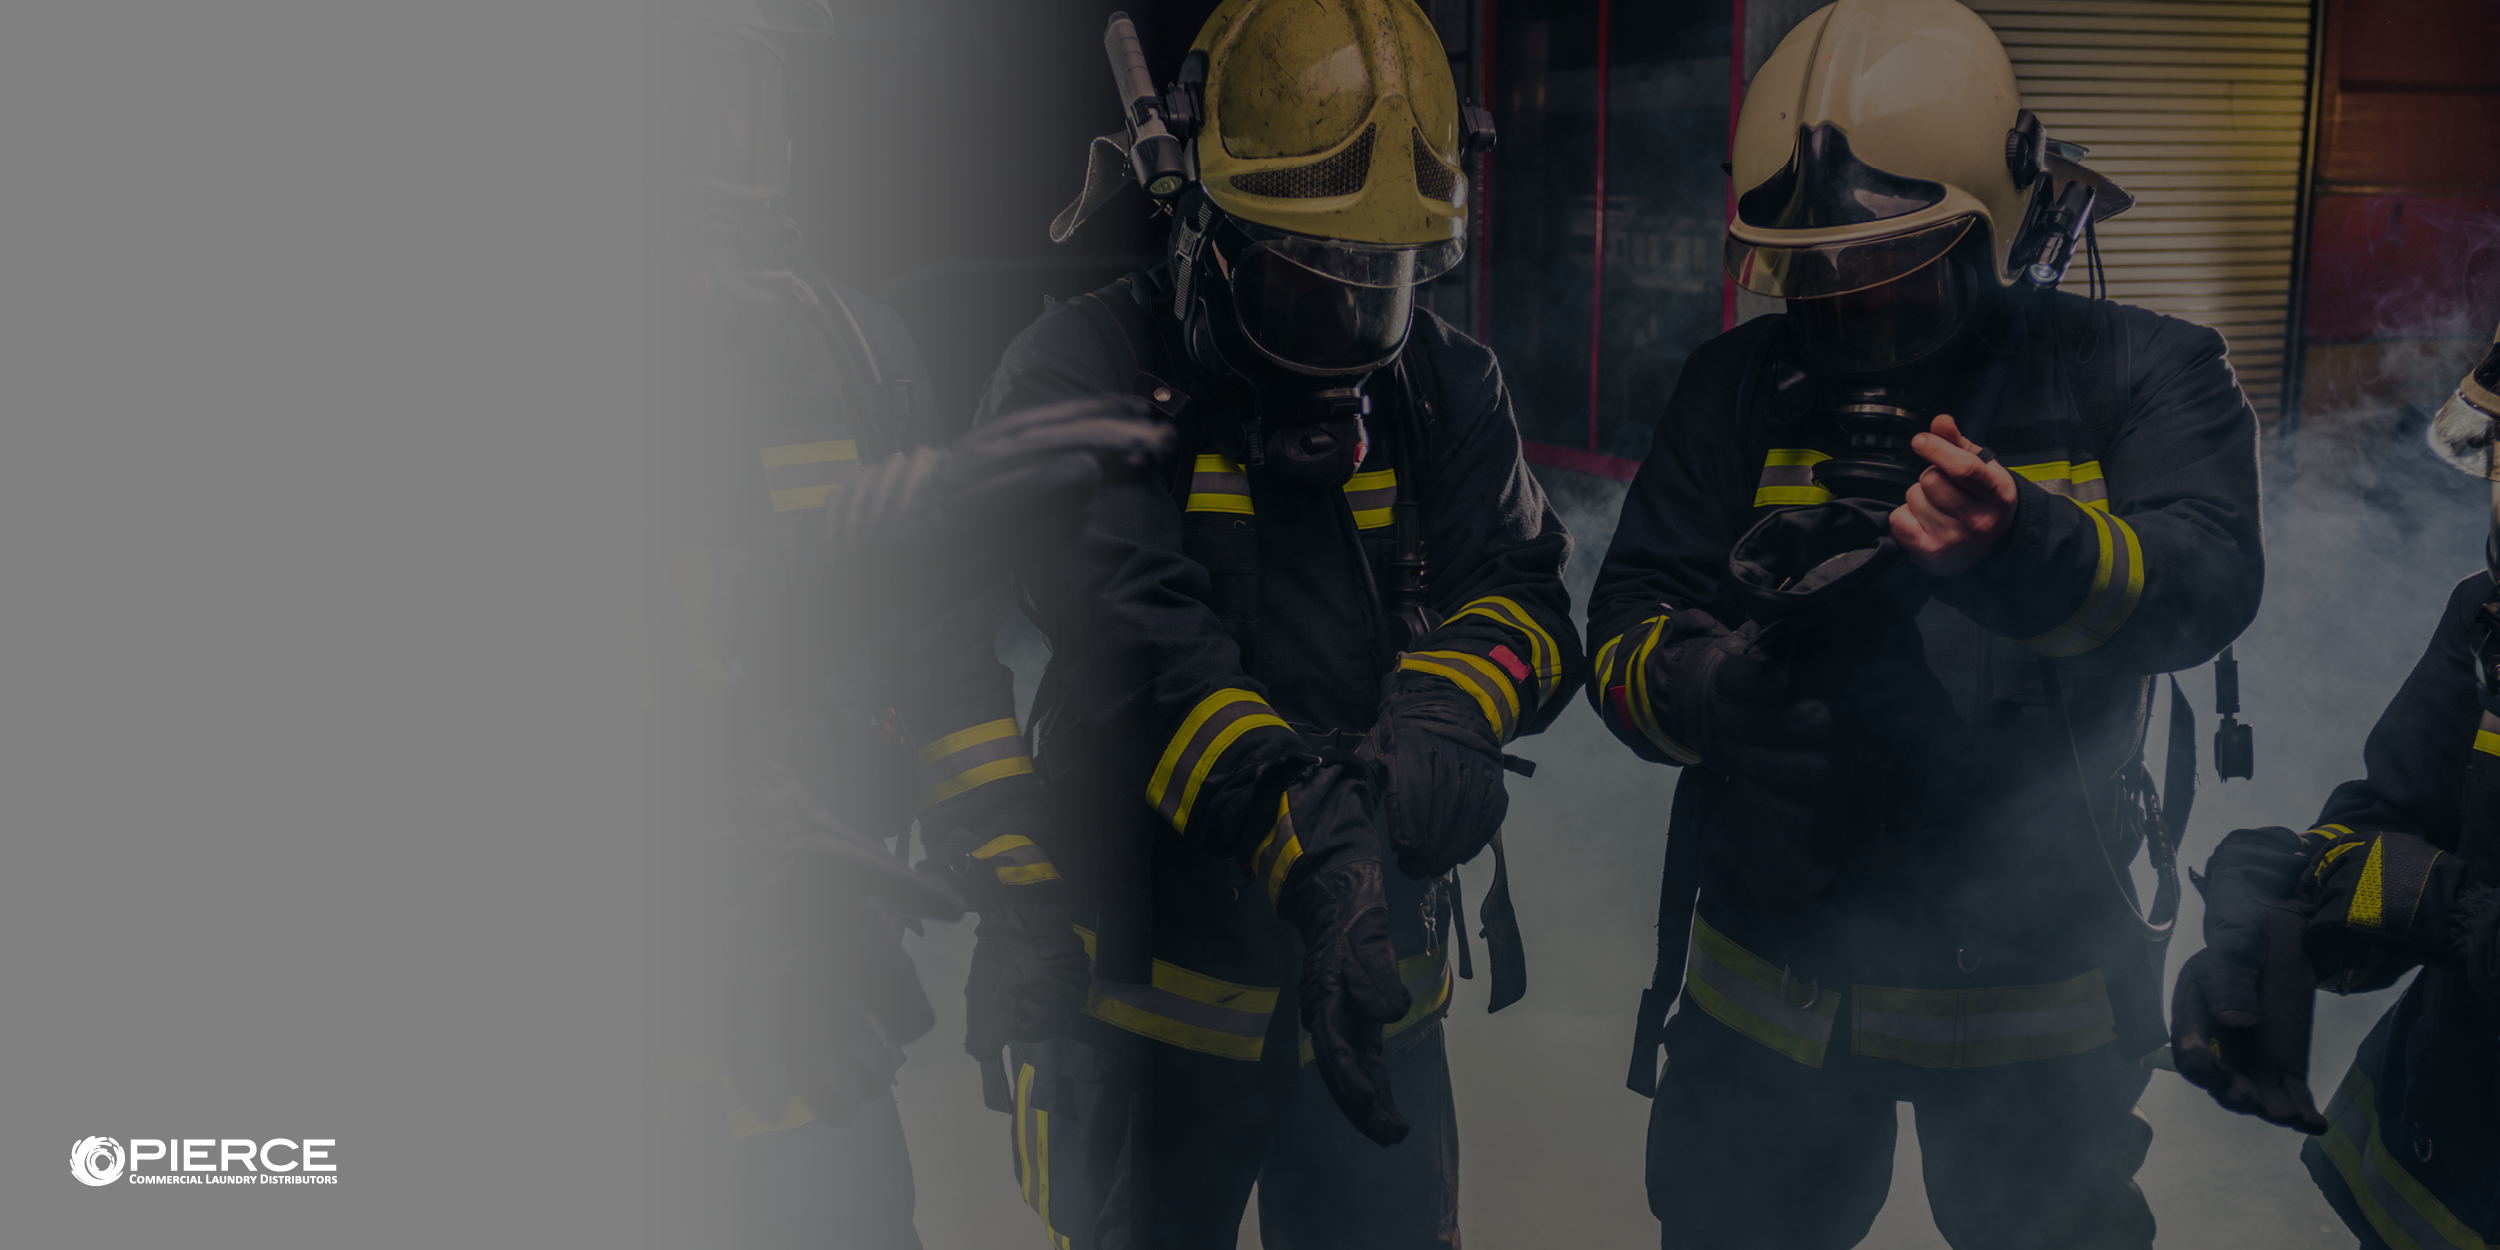 Laundry Equipment for Fire Departments